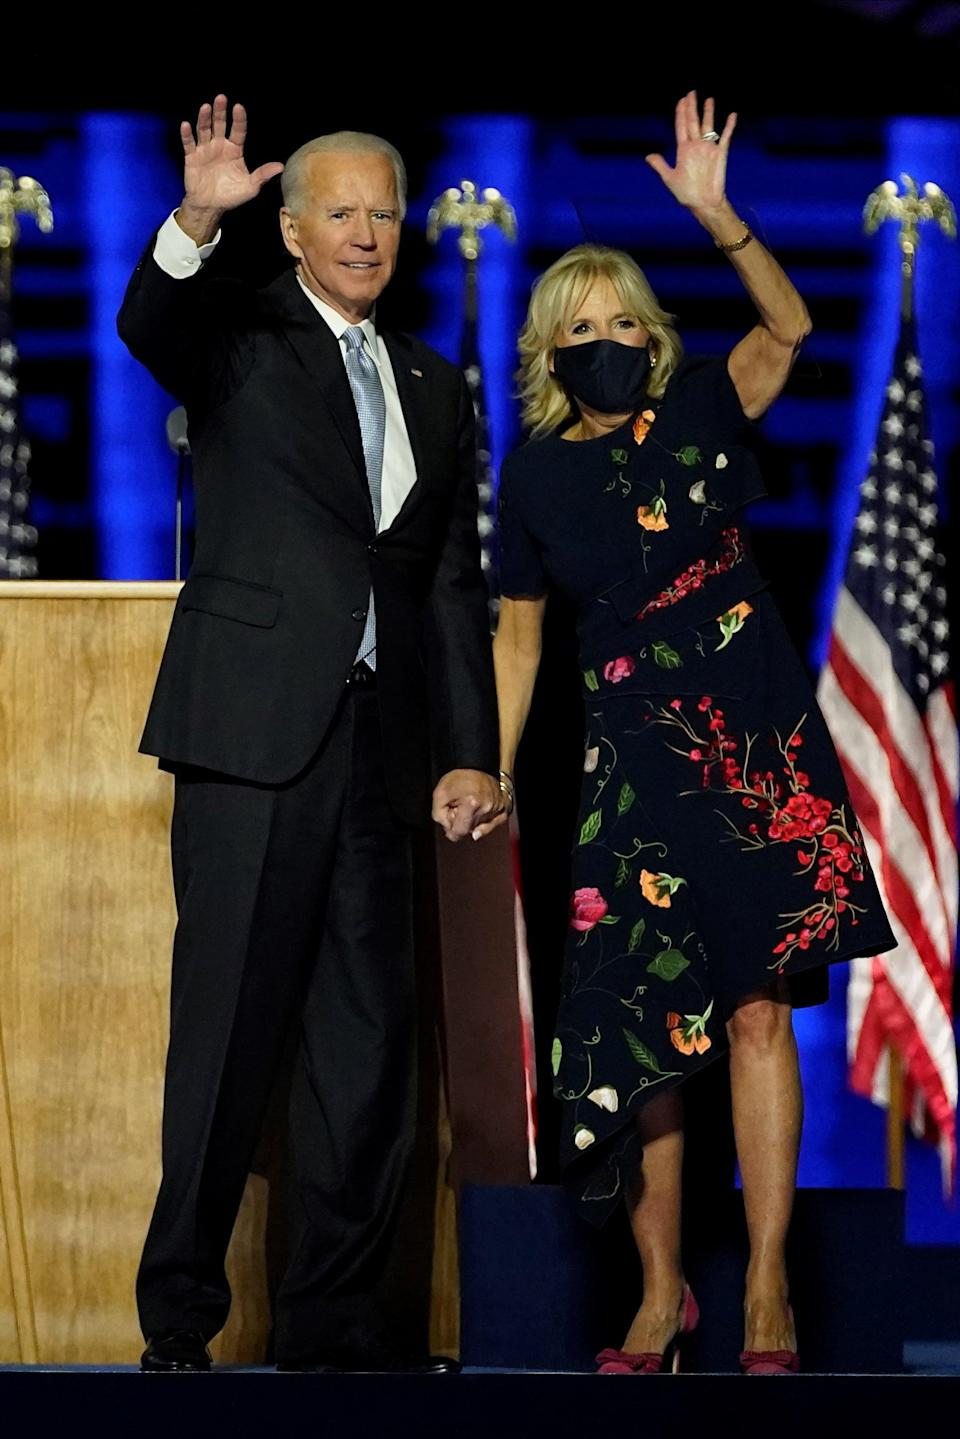 """<p>Dr. Biden chose an asymmetrical Oscar de la Renta dress to salute the crowd on stage with Joe when he delivered remarks in Delaware after being declared the <a href=""""https://www.popsugar.com/news/joe-biden-wins-2020-presidential-election-47947450"""" class=""""link rapid-noclick-resp"""" rel=""""nofollow noopener"""" target=""""_blank"""" data-ylk=""""slk:winner of the US presidential election"""">winner of the US presidential election</a>. Oscar de la Renta is a brand worn by many first ladies past, and it's worth mentioning that the late designer was born in the Dominican Republic before eventually launching his namesake label in the US. Now, co-creative directors Laura Kim and Fernando Garcia, who also founded New York-based brand Monse, are at the helm of Oscar de la Renta. They, too, are immigrants to the US.</p>"""